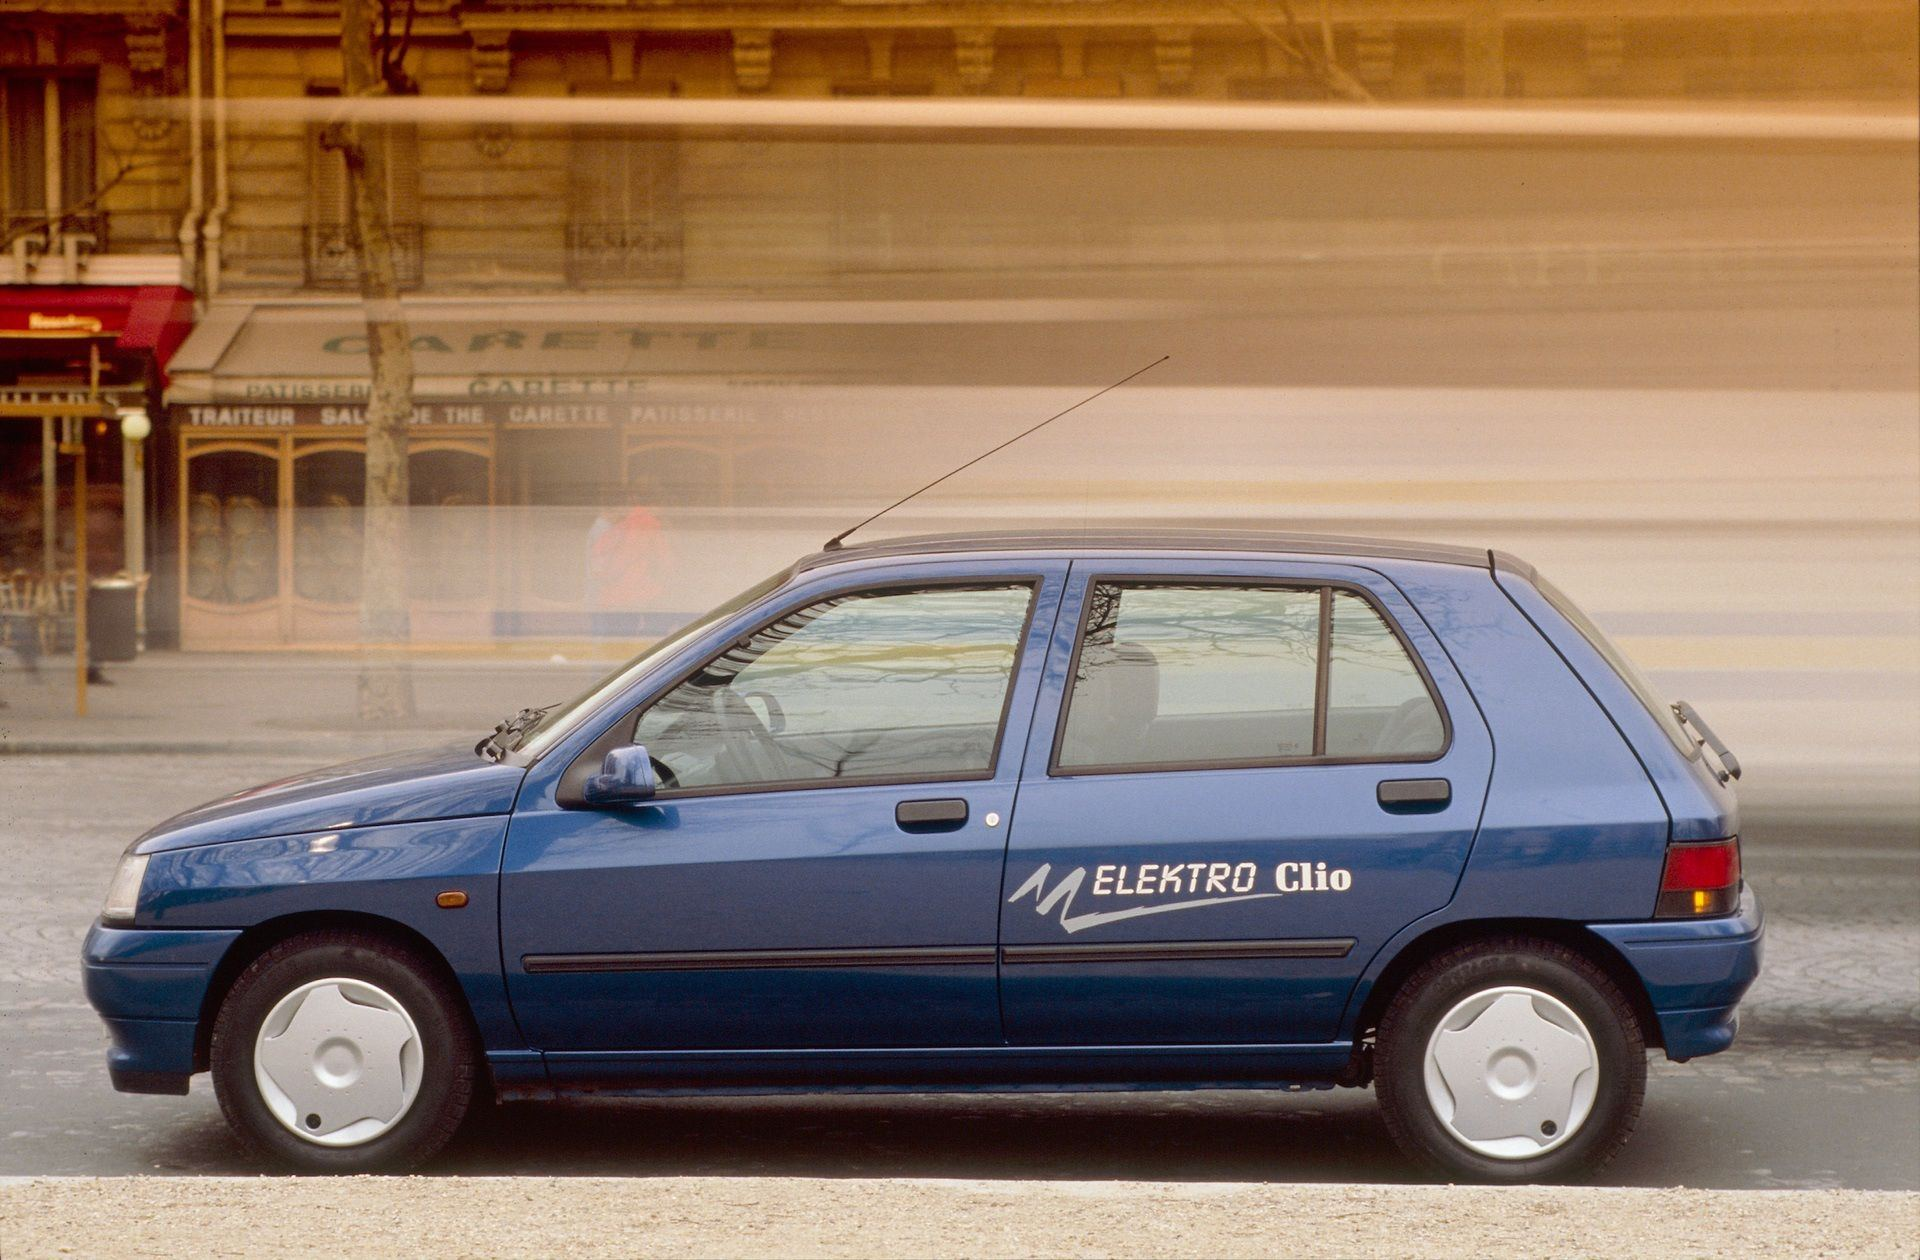 2020-30-years-of-Renault-CLIO-Renault-CLIO-I-1990-1999-21